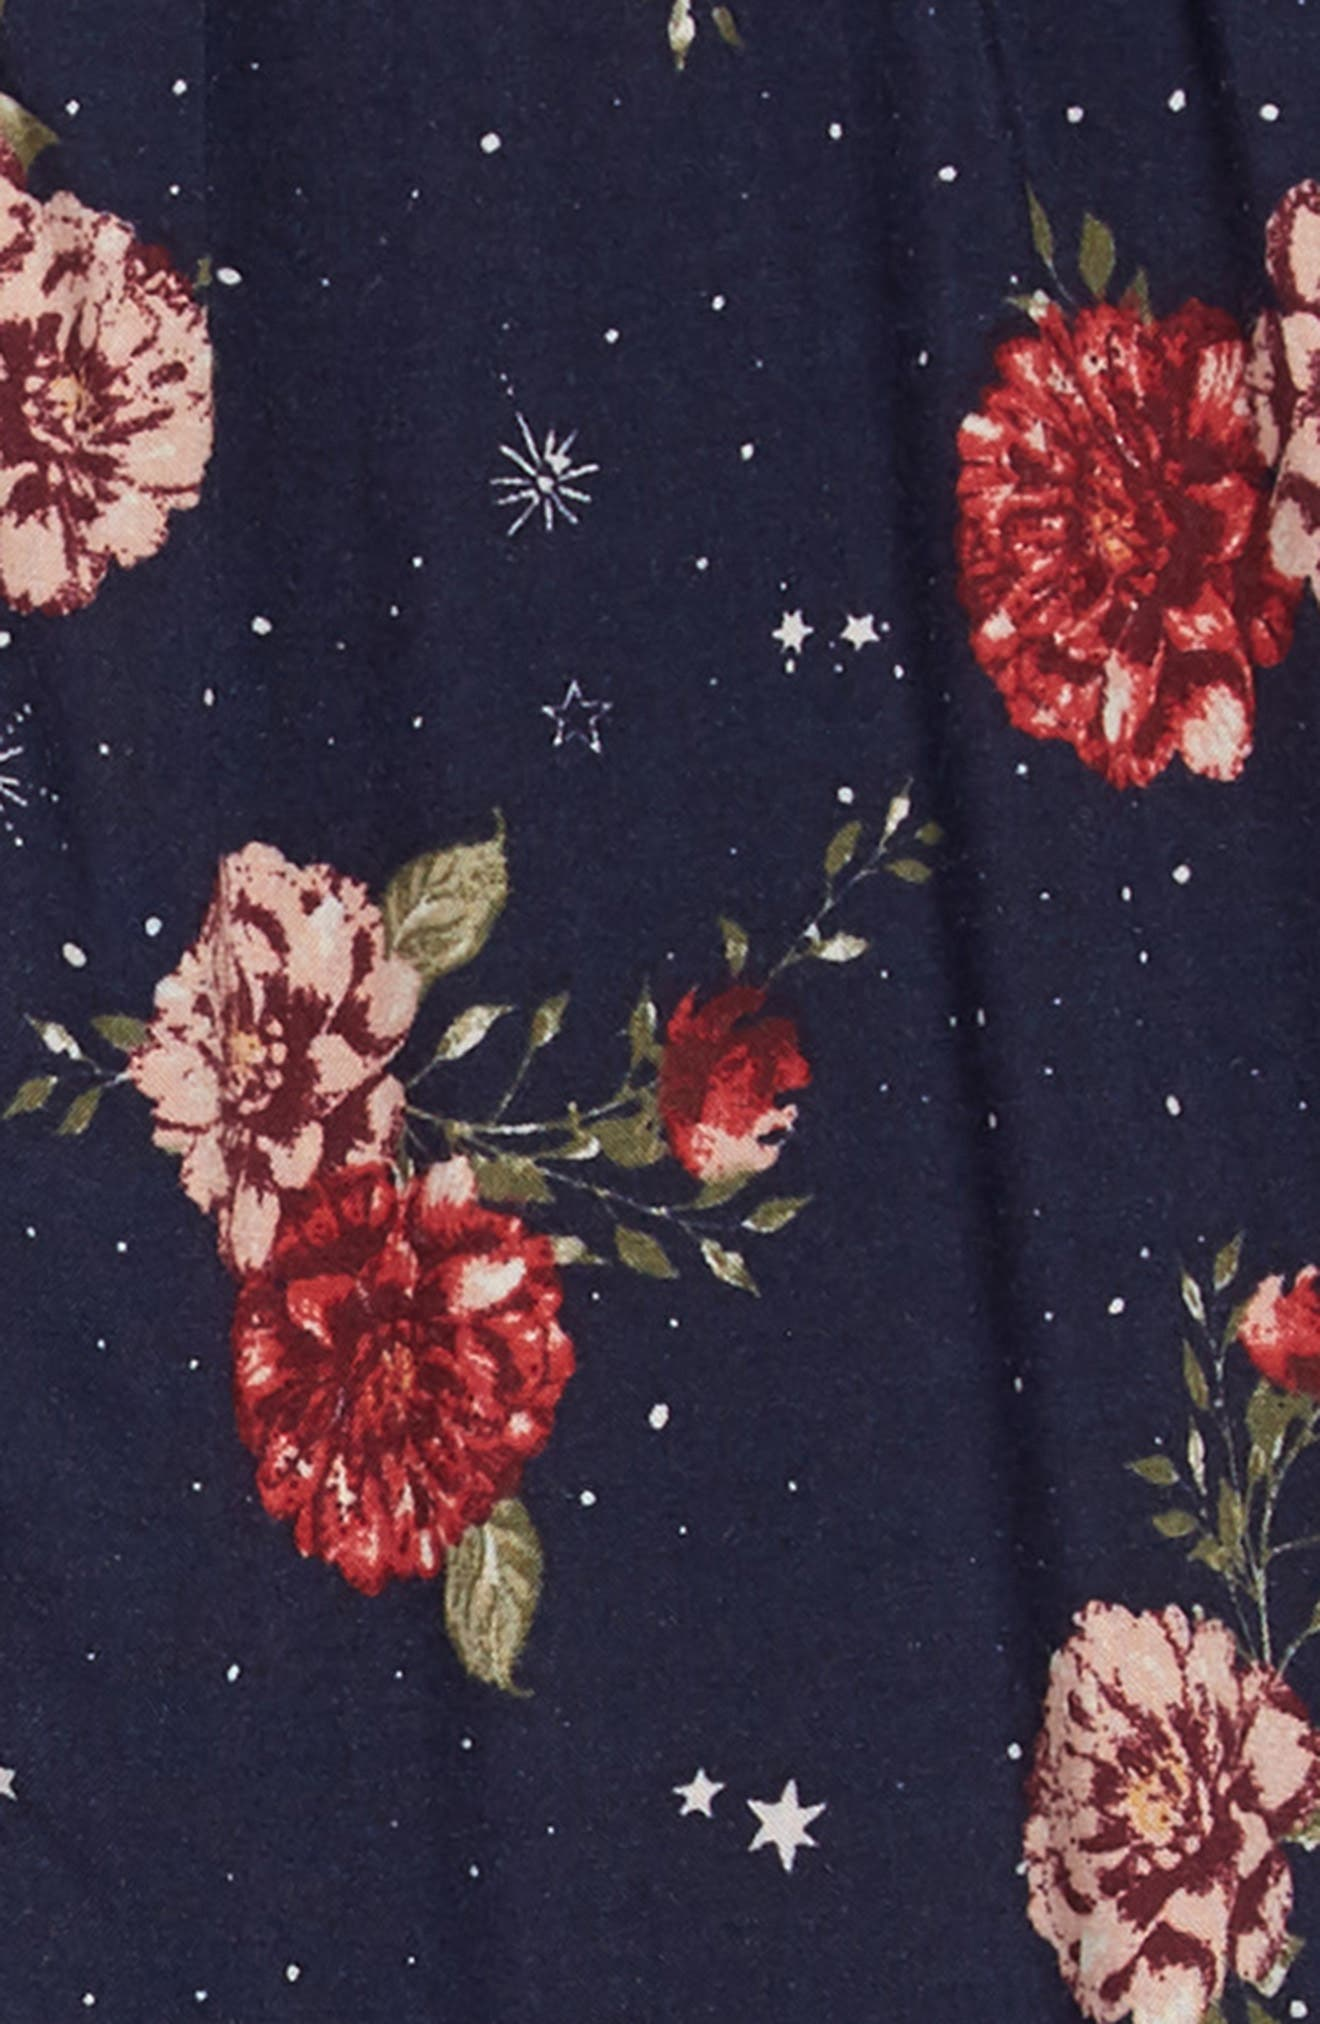 Cosmic Floral Dress,                             Alternate thumbnail 3, color,                             NAVY FLORAL